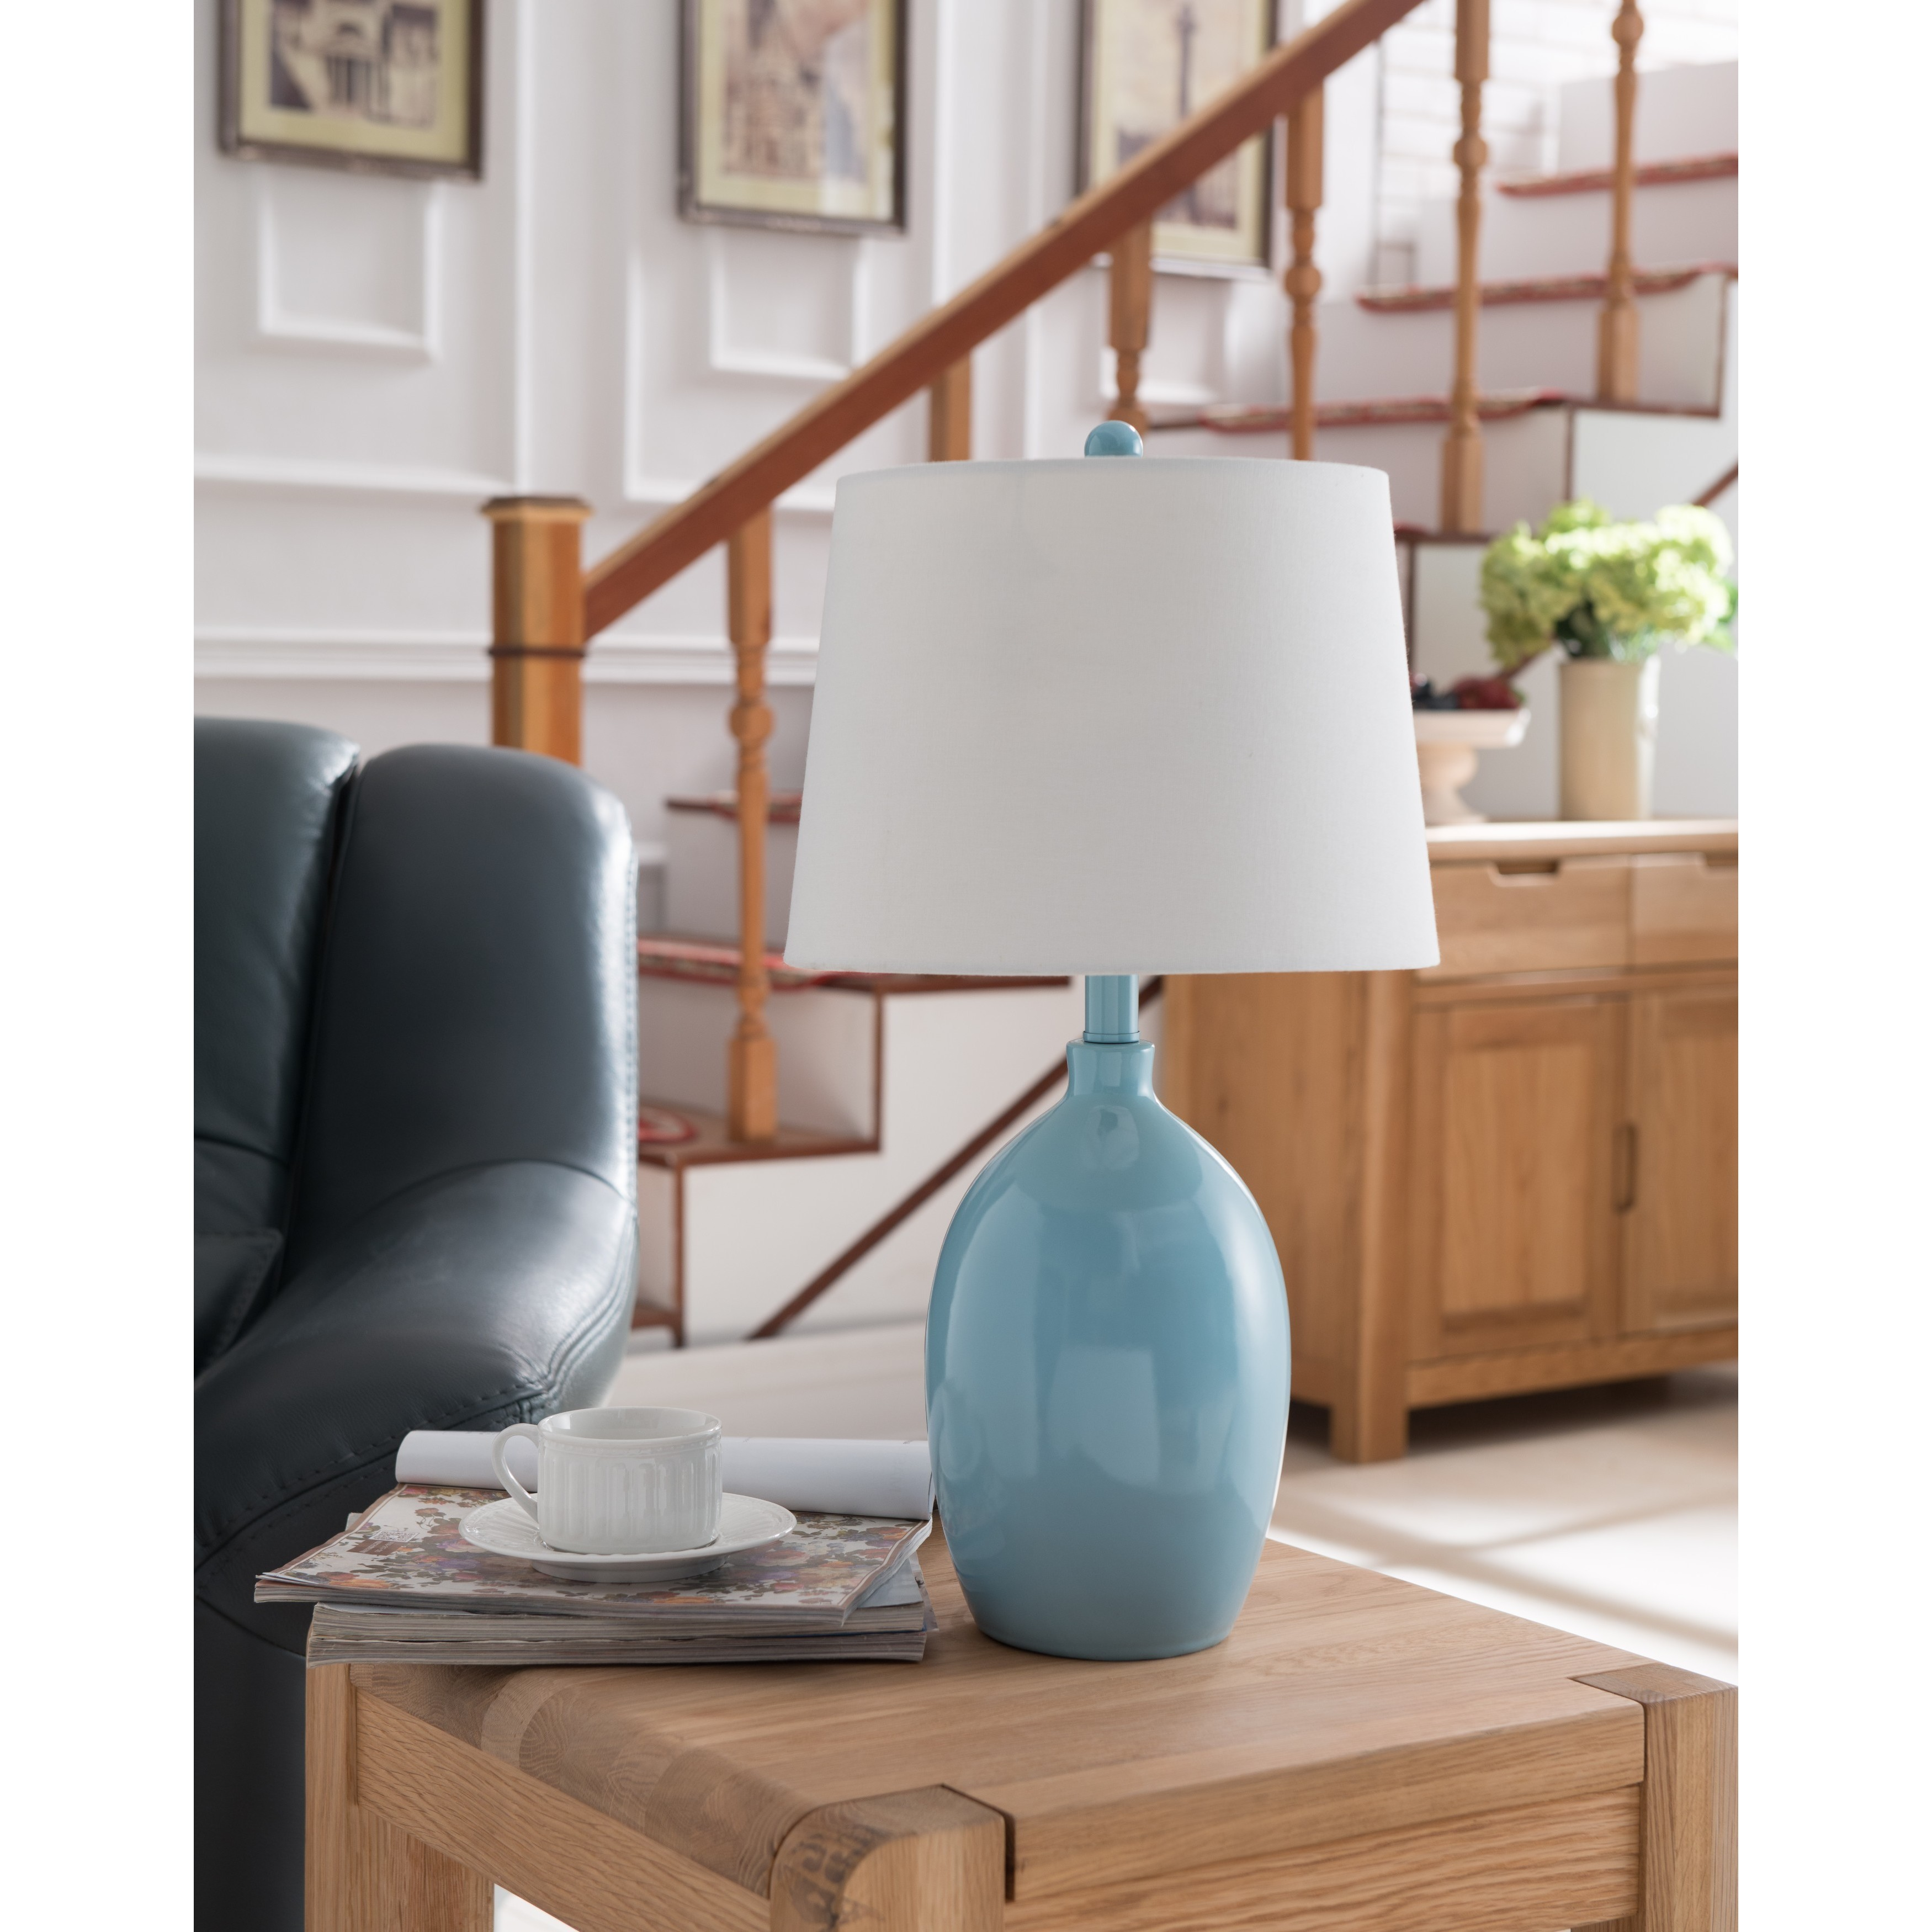 K And B Furniture Co Inc Blue White Table Lamps Set Of 2 On Sale Overstock 15003168